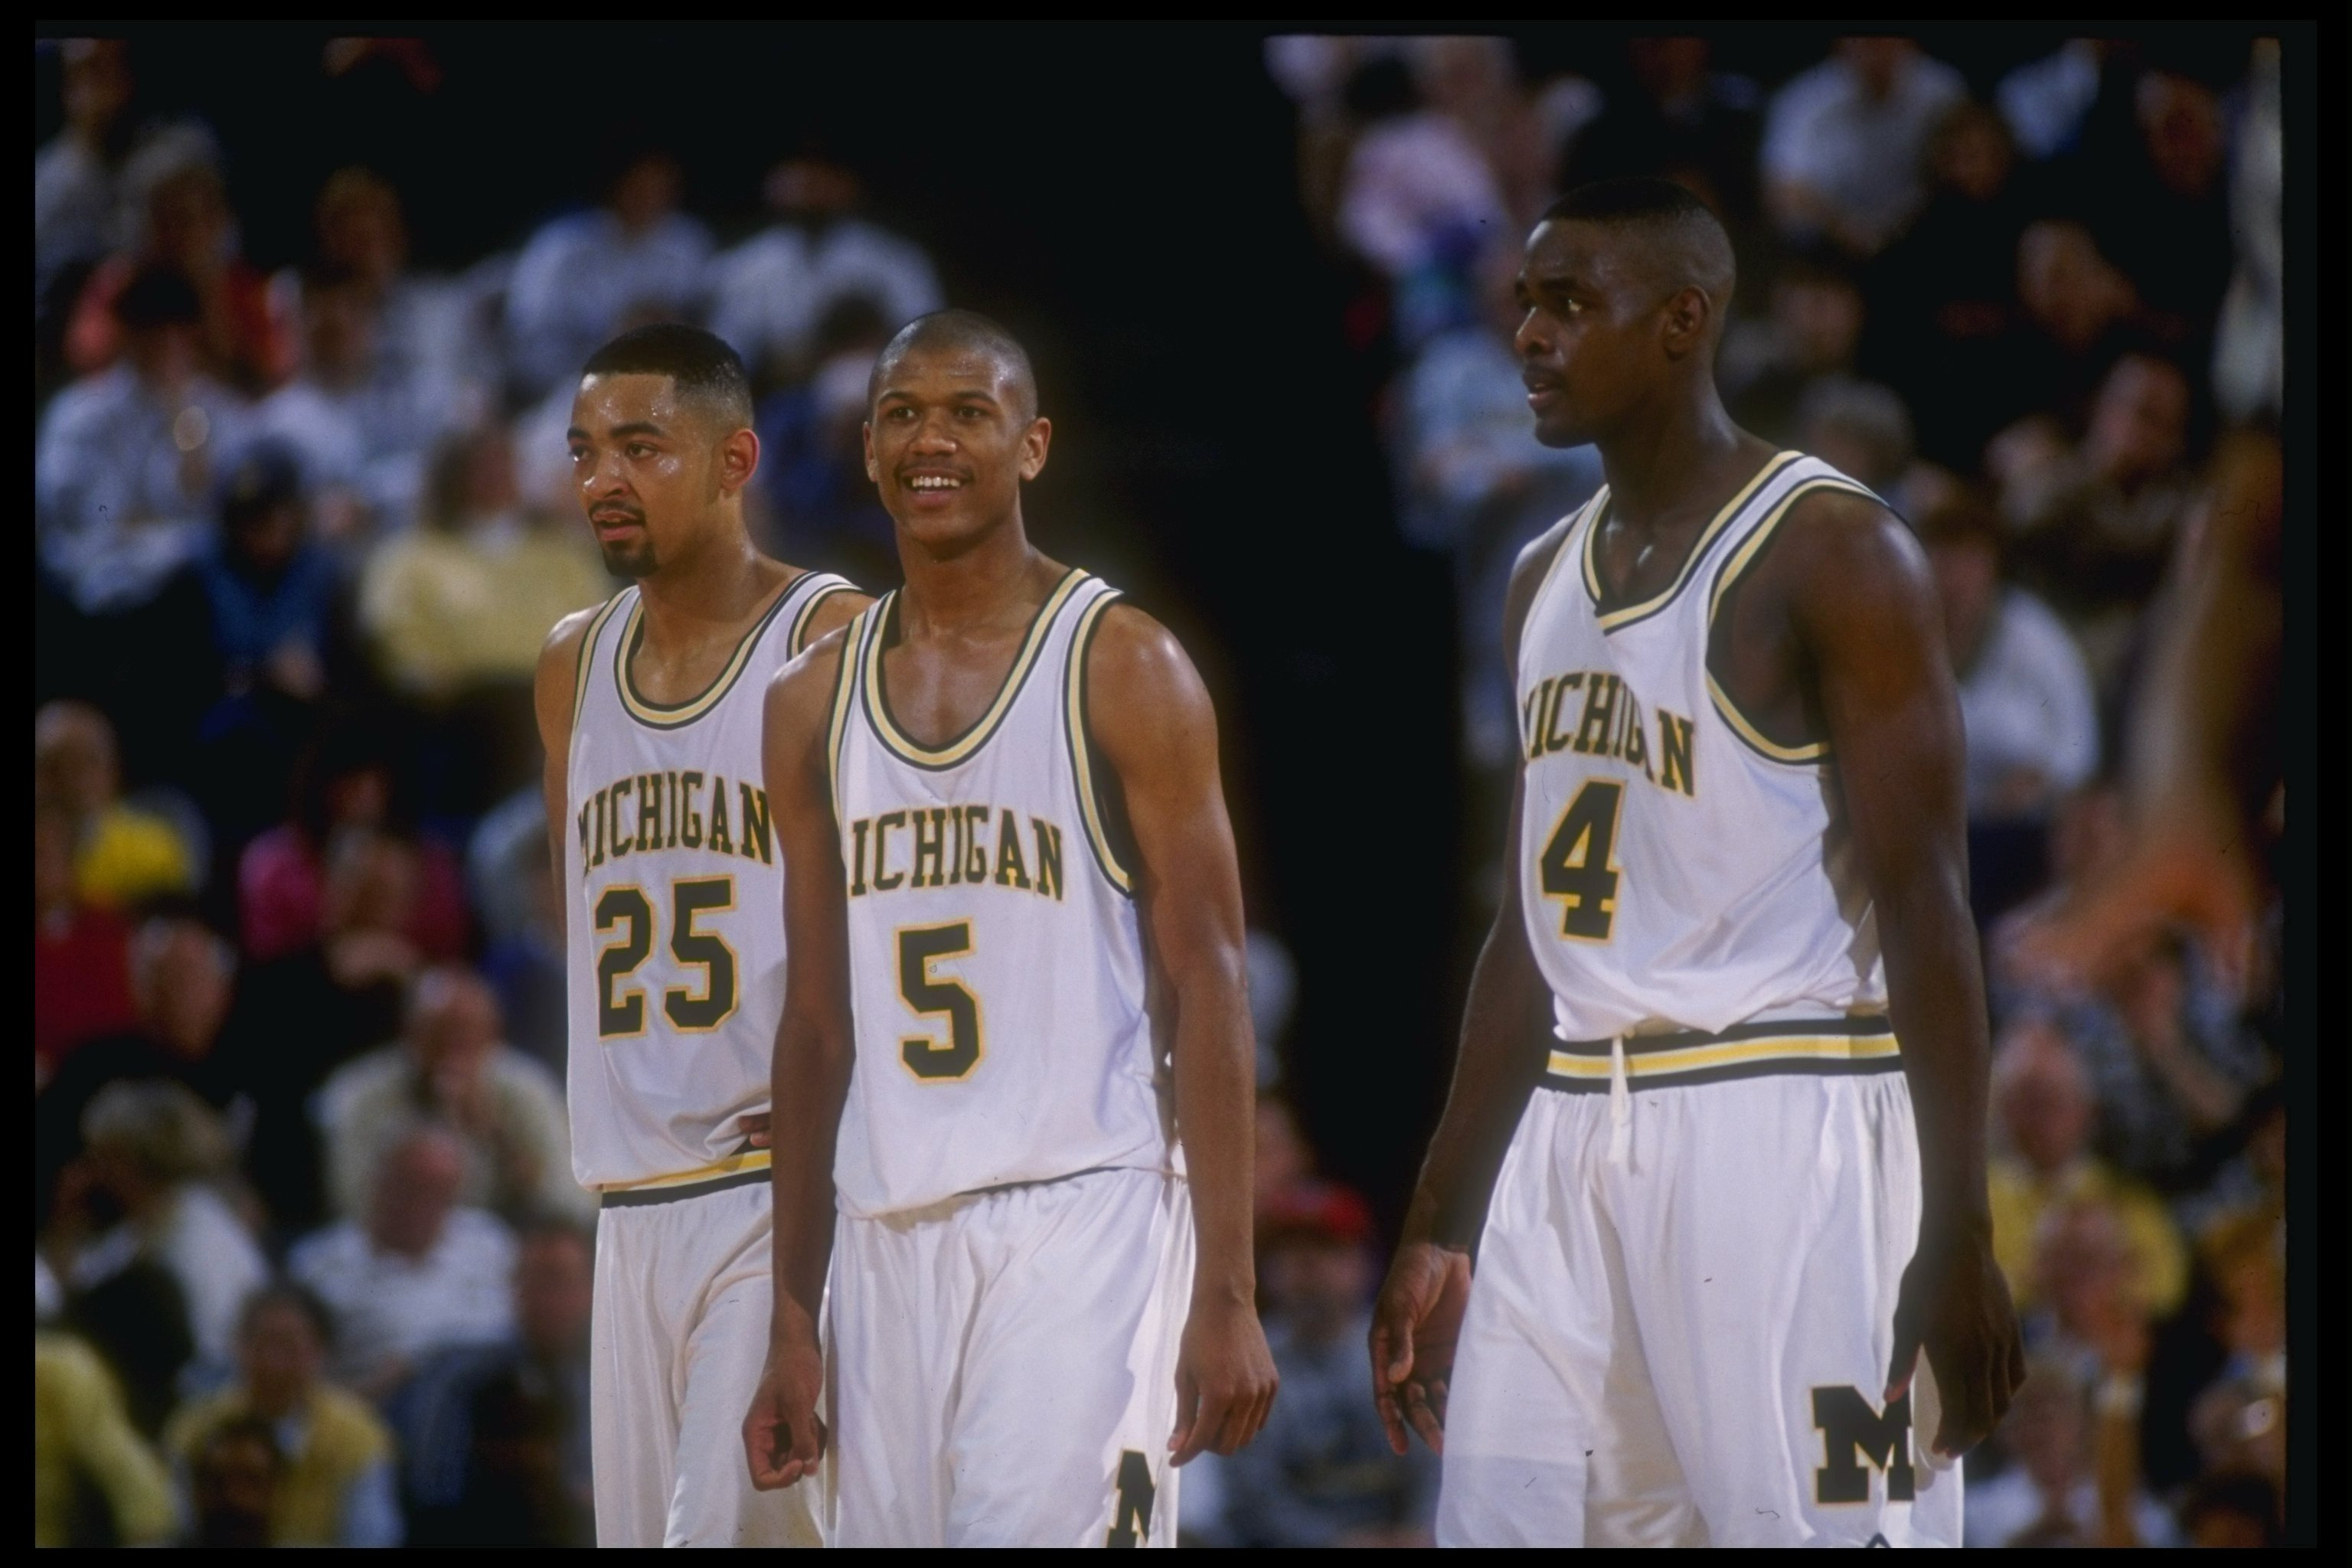 Wolverines' Juwan Howard, Jalen Rose, and Chris Webber